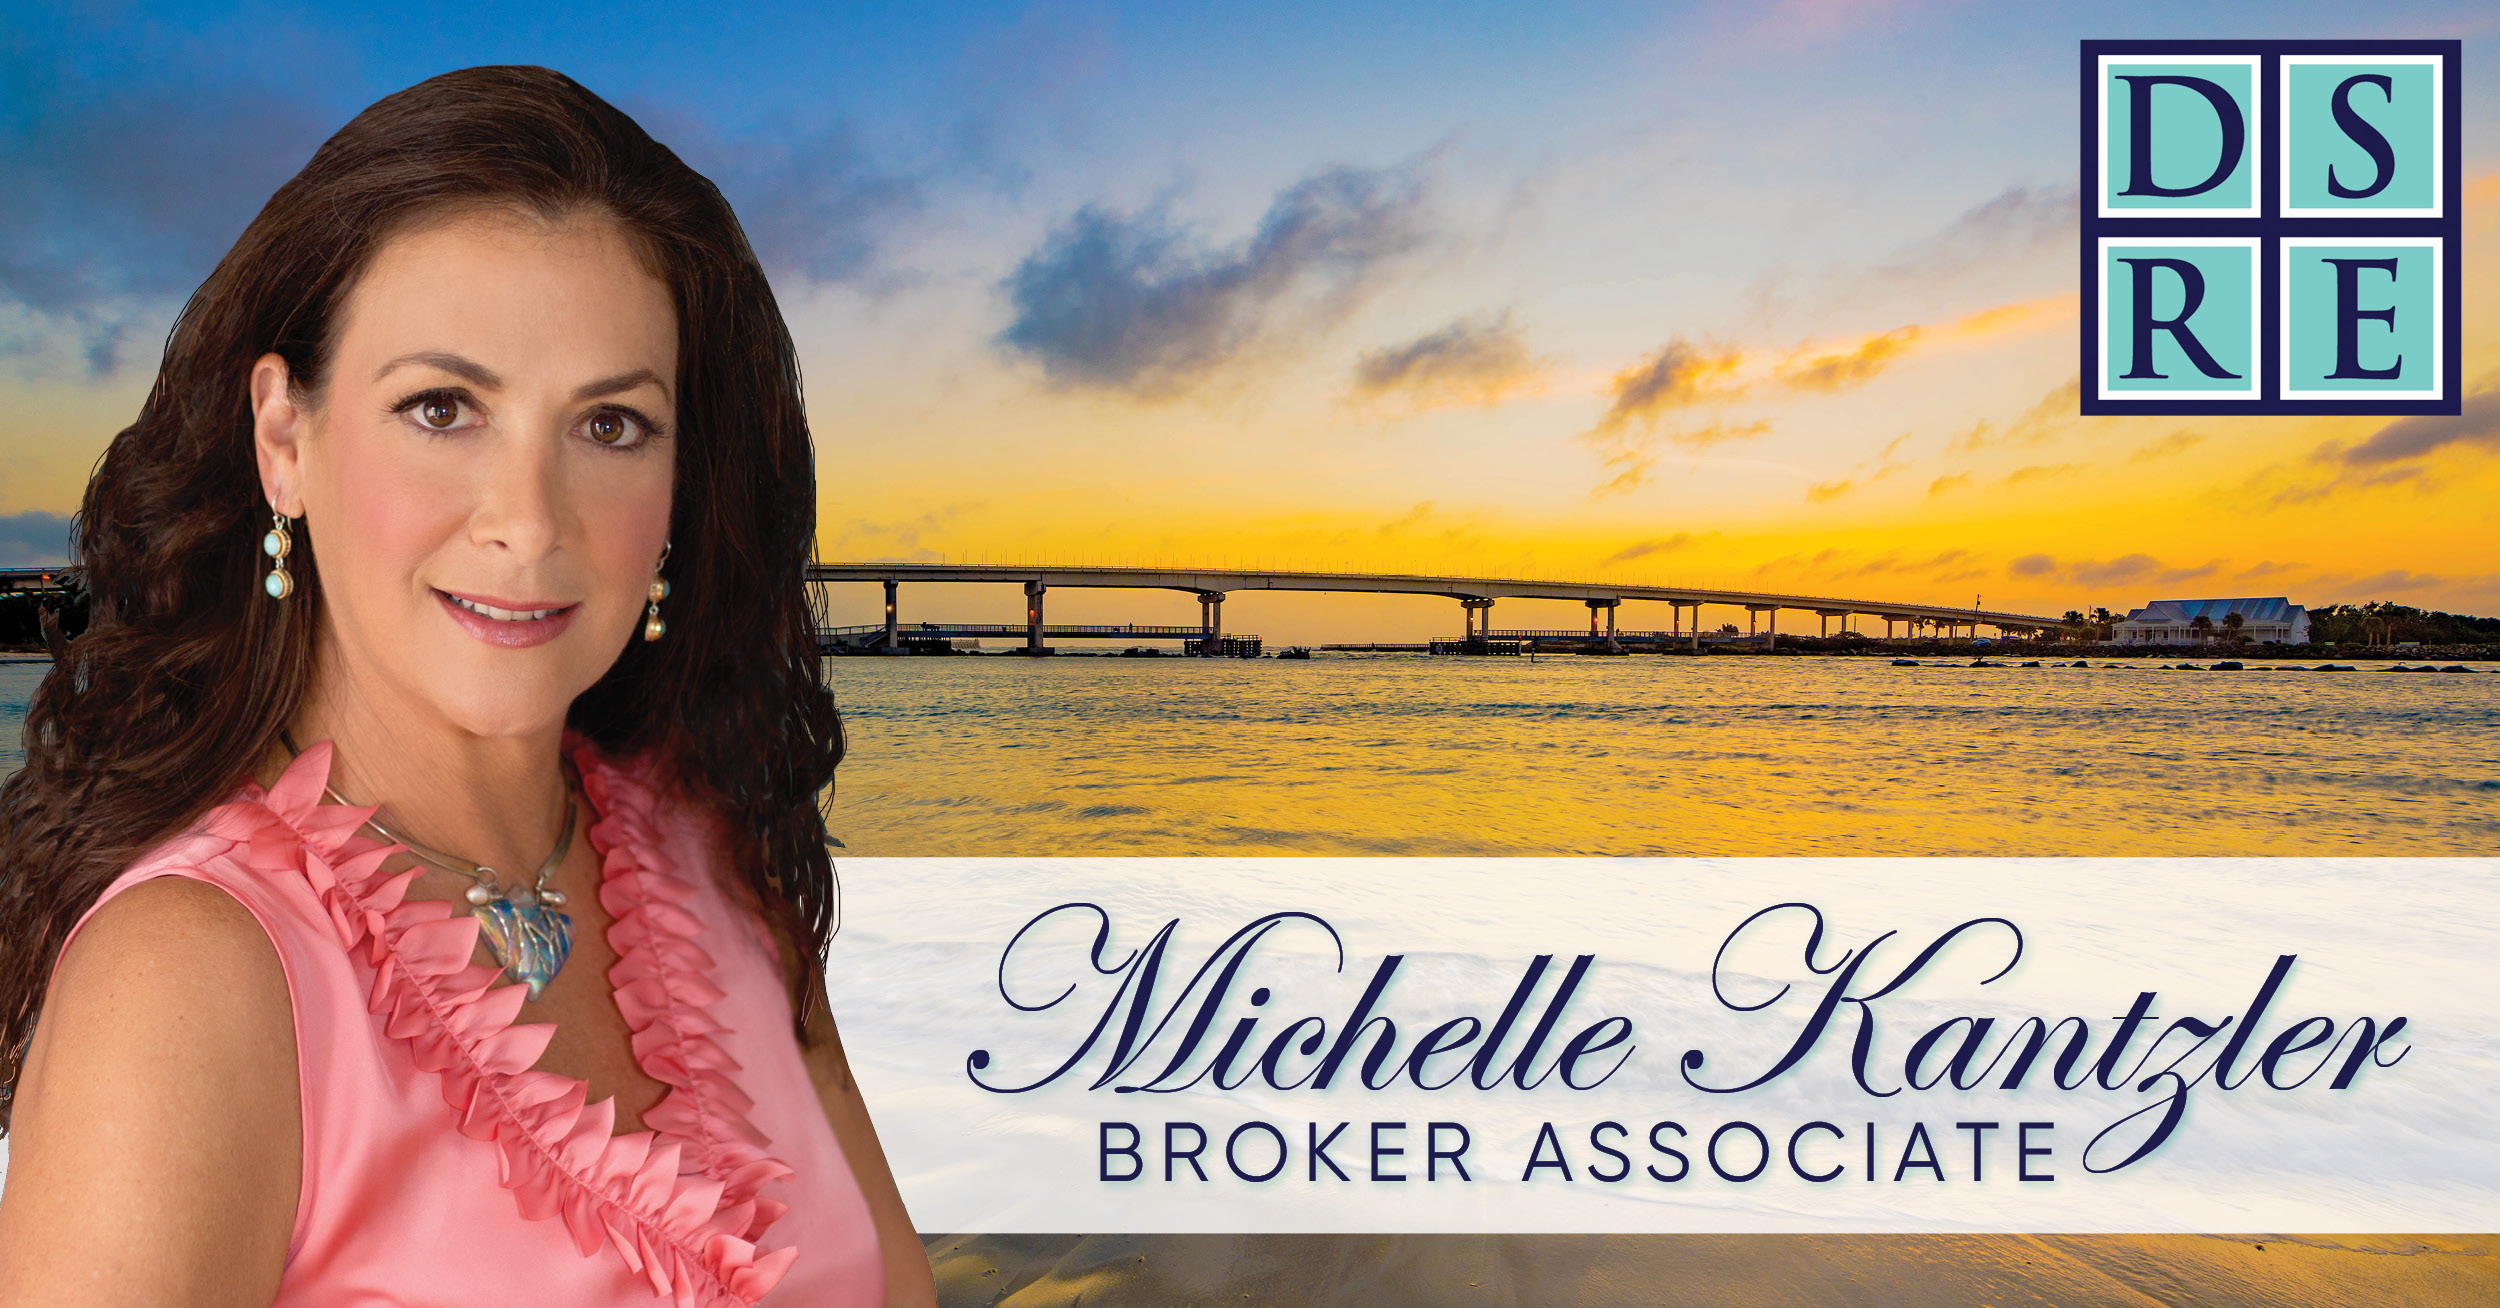 DSRE | Michelle Kantzler Broker Associate